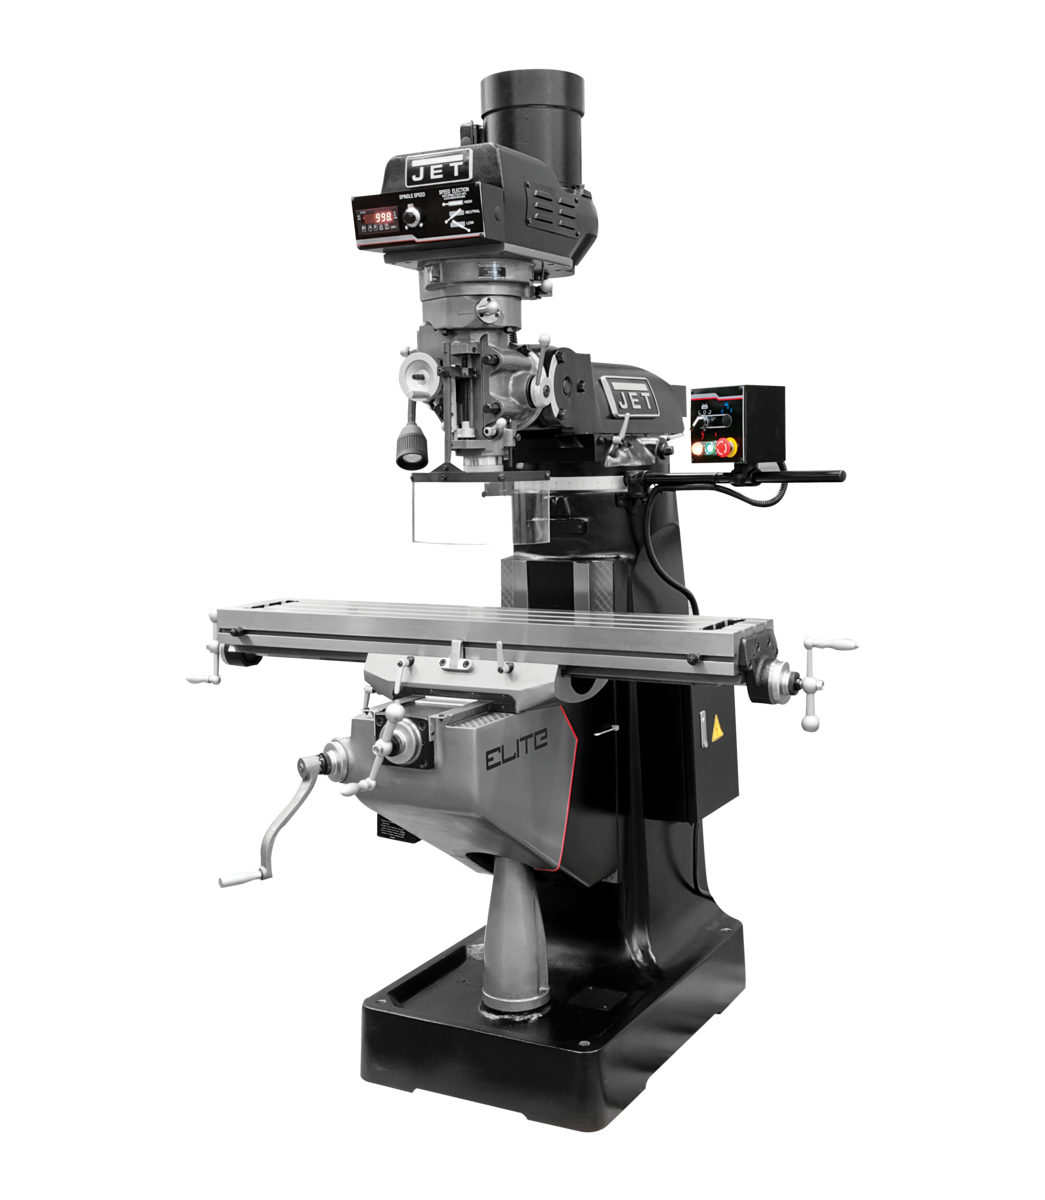 EVS-949 Mill with 2-Axis ACU-RITE 303 DRO and Servo X, Y, Z-Axis Powerfeeds